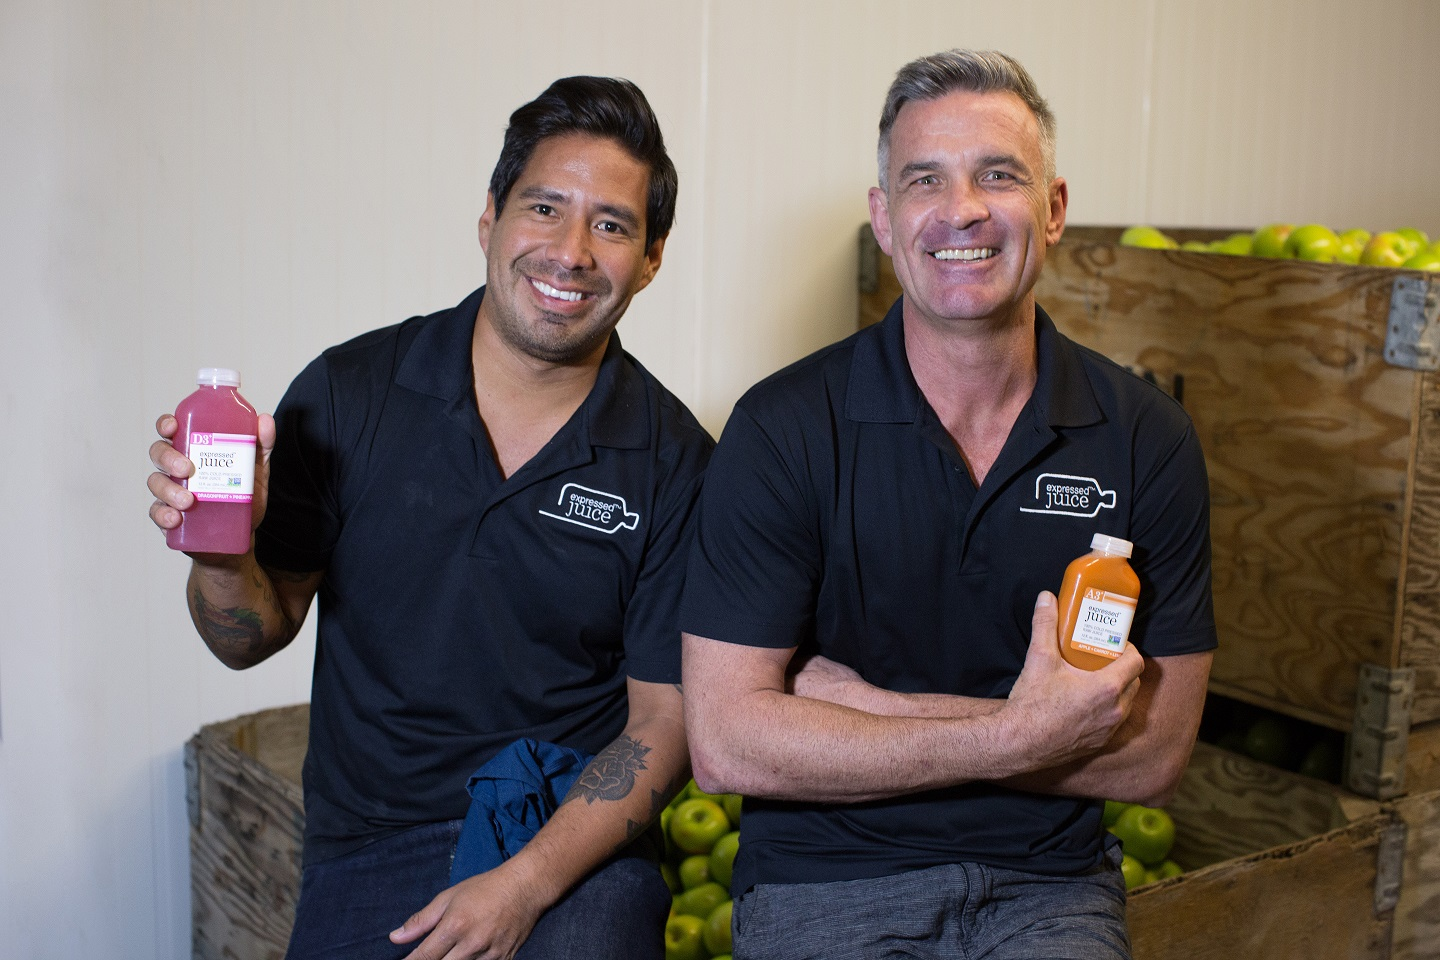 Willie Pinillos-left & Paul Van Hamond-right - Expressed Juice, a client of the Florida SBDC at FIU